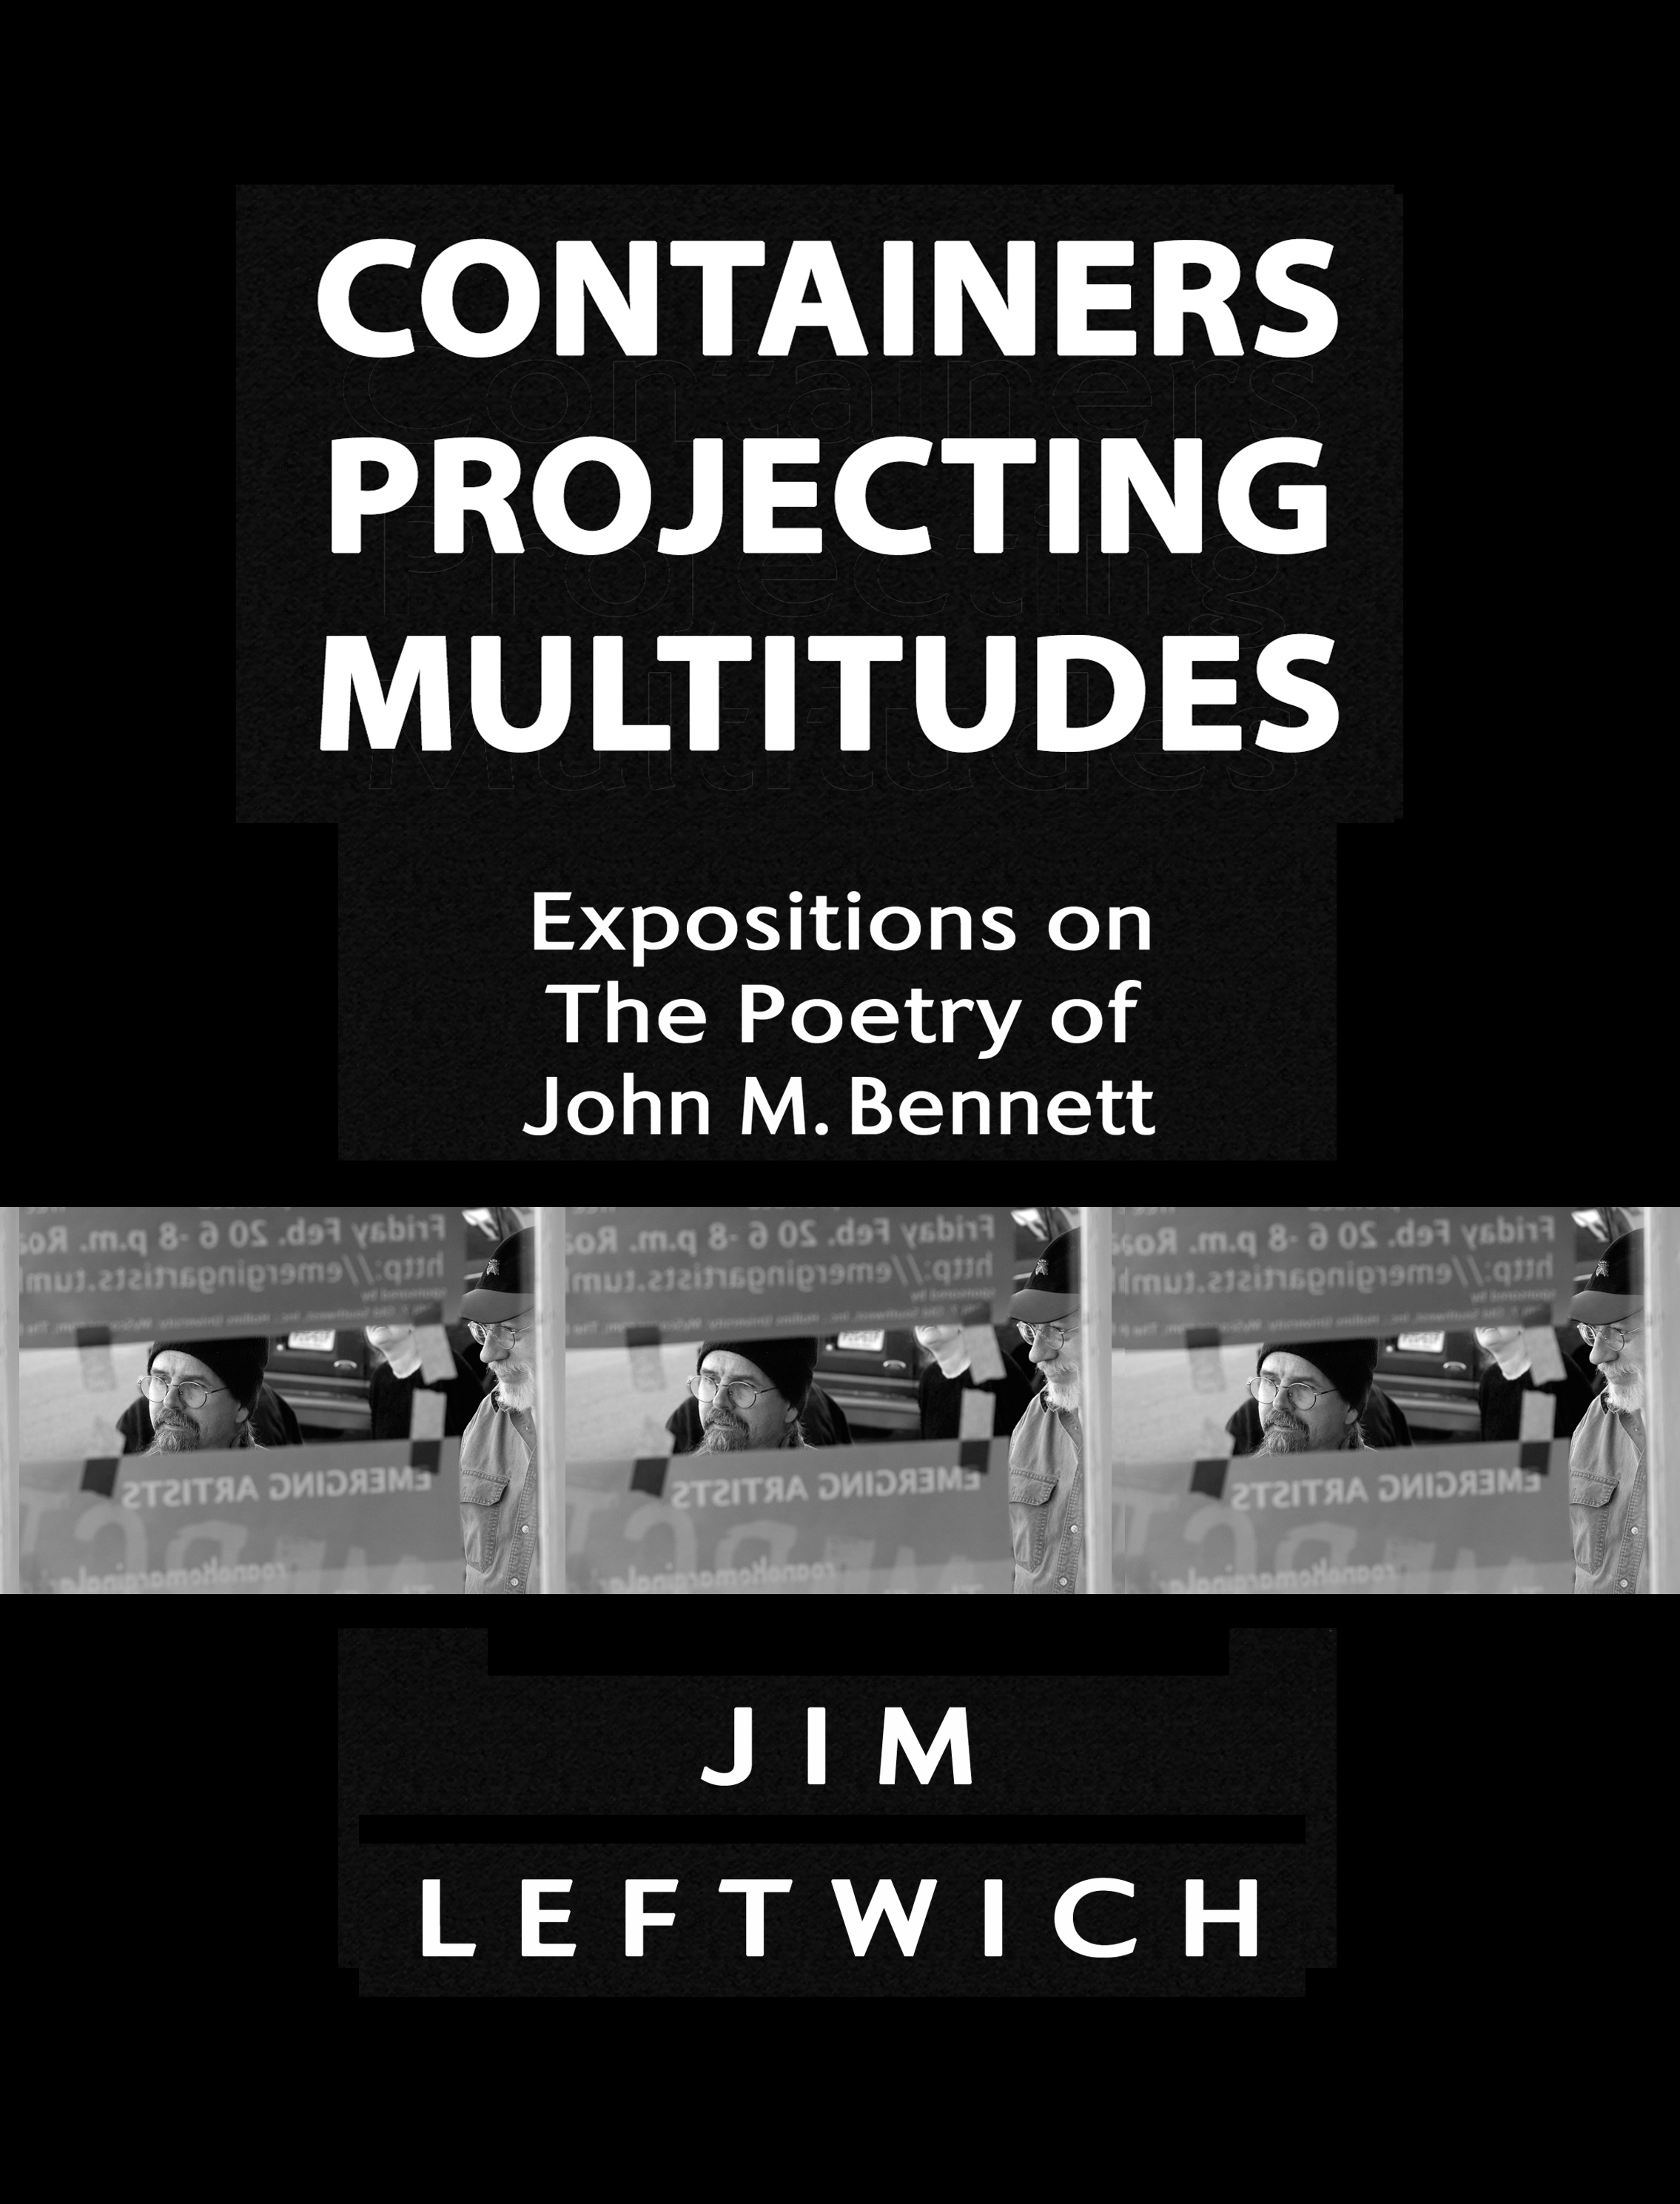 Containers Projecting Multitudes: Expositions on The Poetry of John M. Bennett